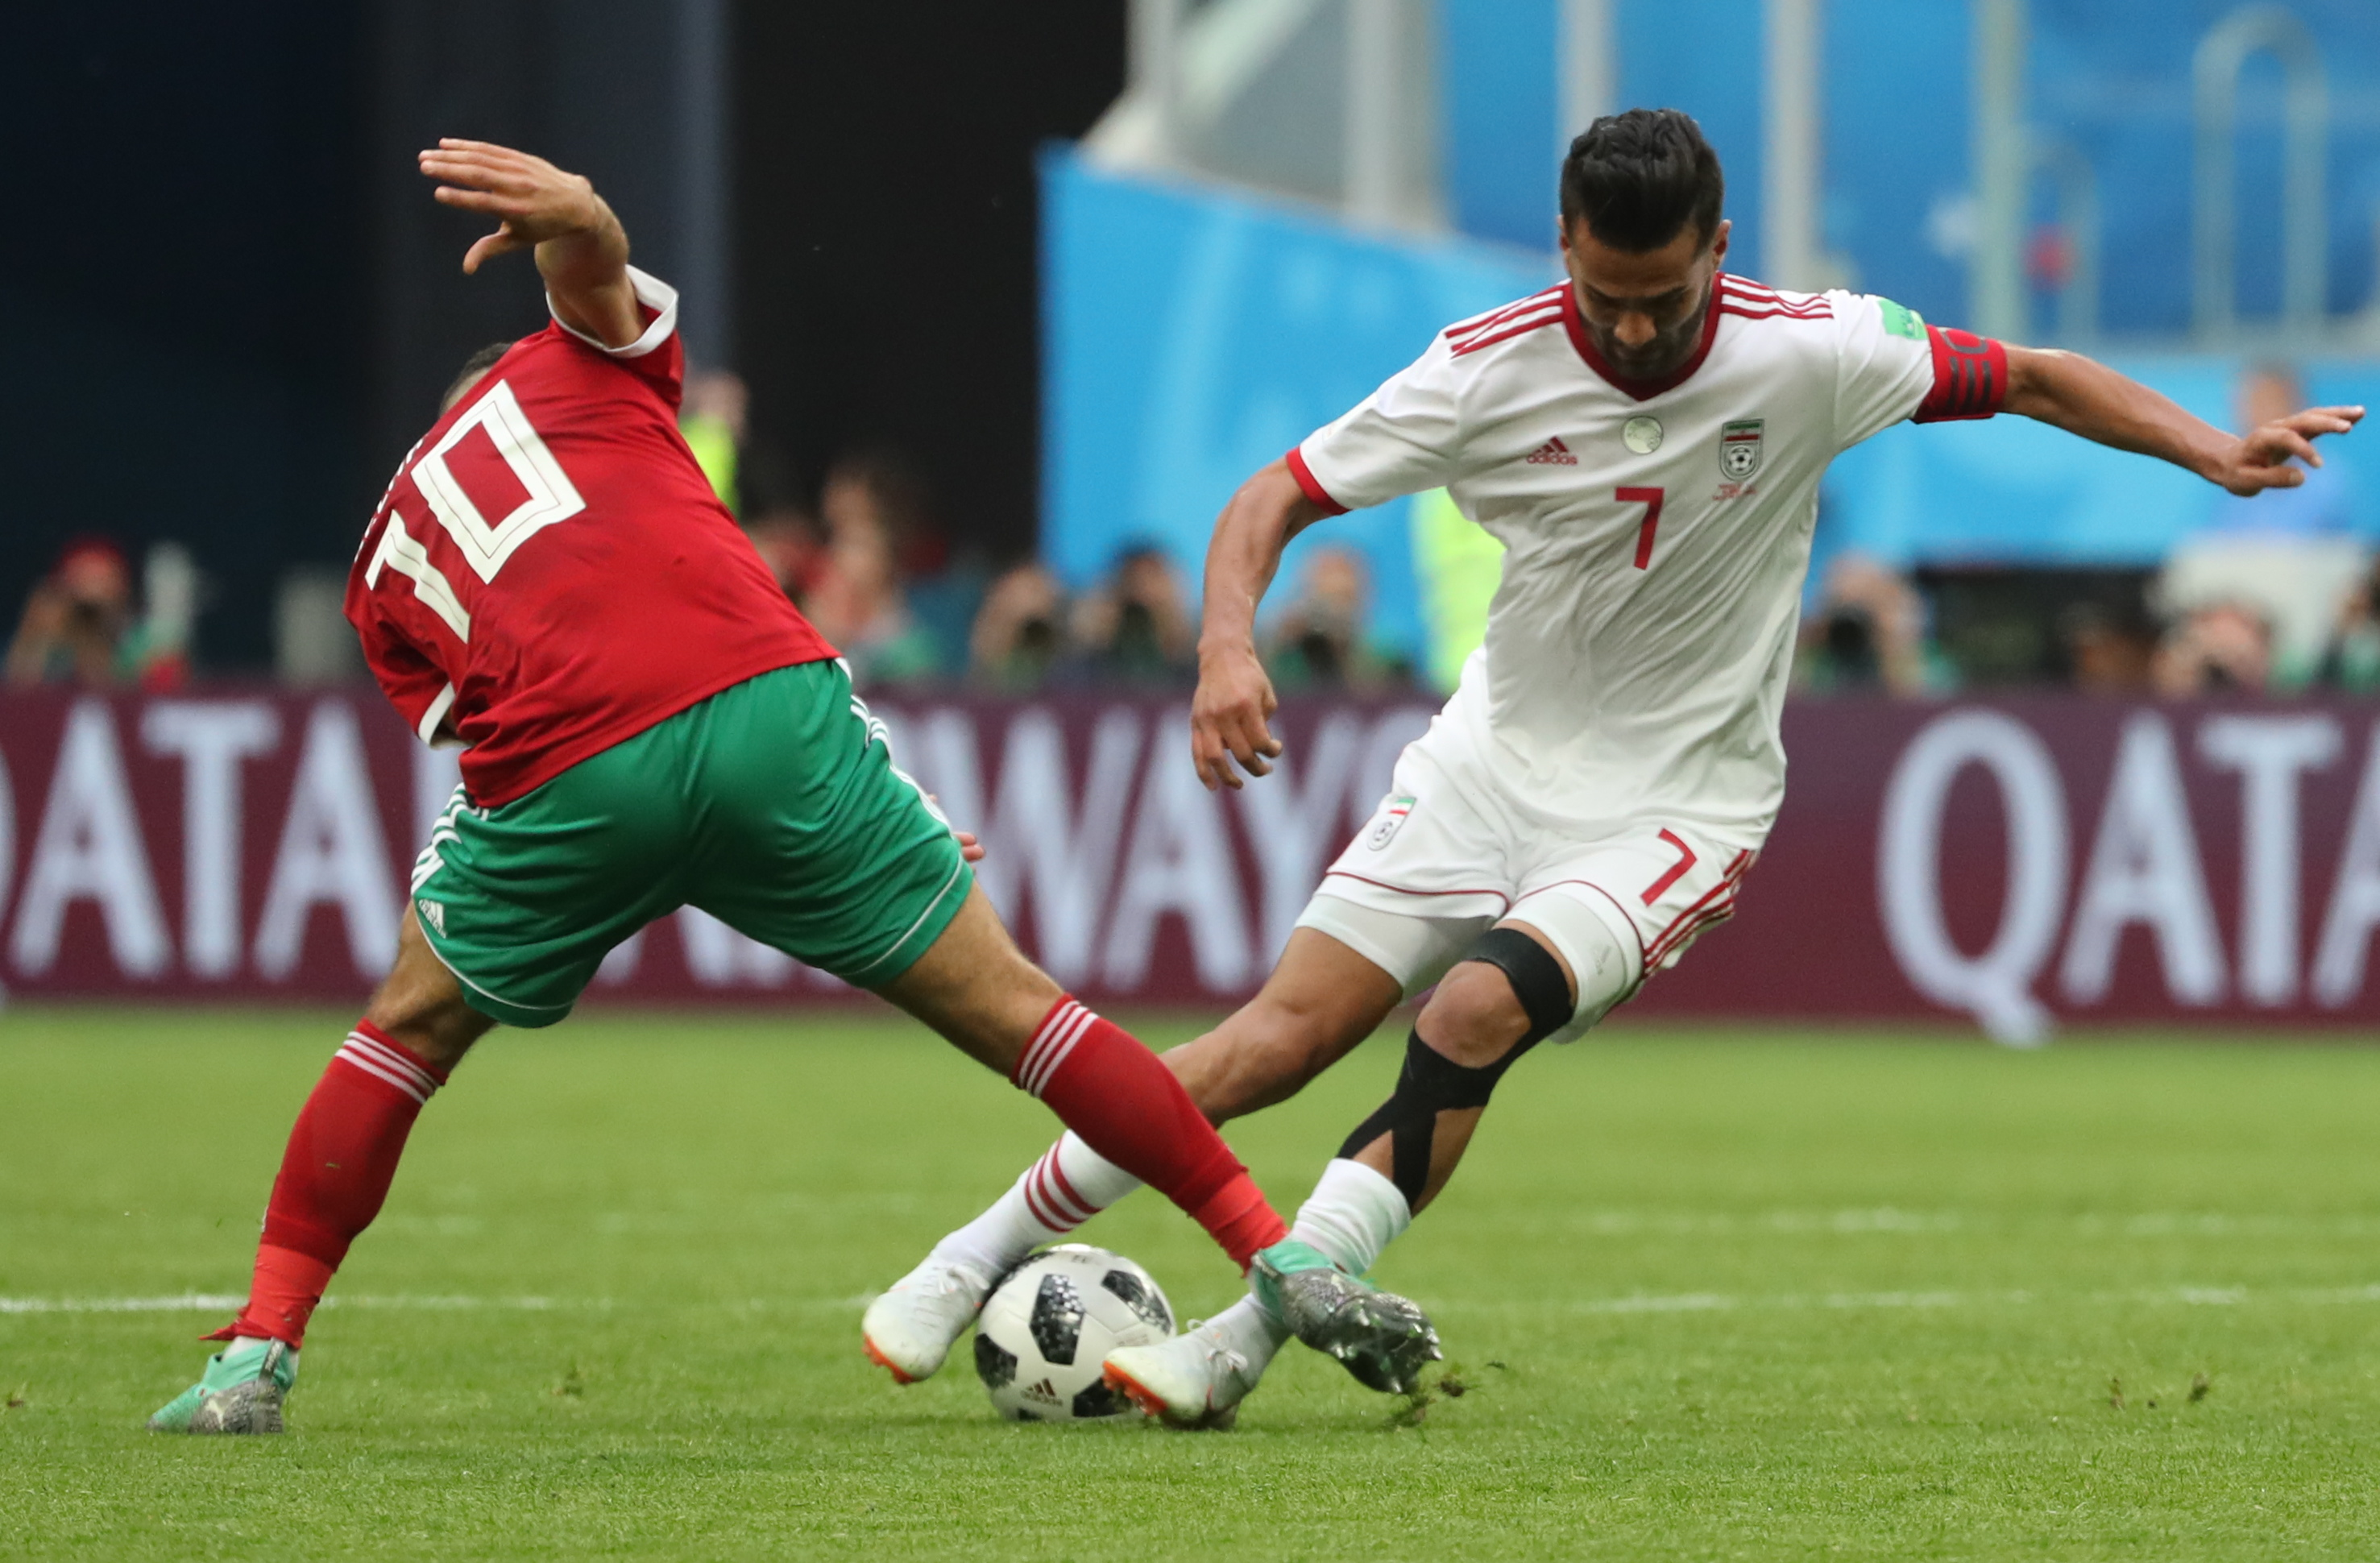 ST PETERSBURG, RUSSIA - JUNE 15, 2018: Morocco's Younes Belhanda (L) and Iran's Masoud Shojaei in a First Stage Group B football match between Morocco and Iran at Saint-Petersburg Stadium (also known as Krestovsky Stadium) at FIFA World Cup Russia 2018